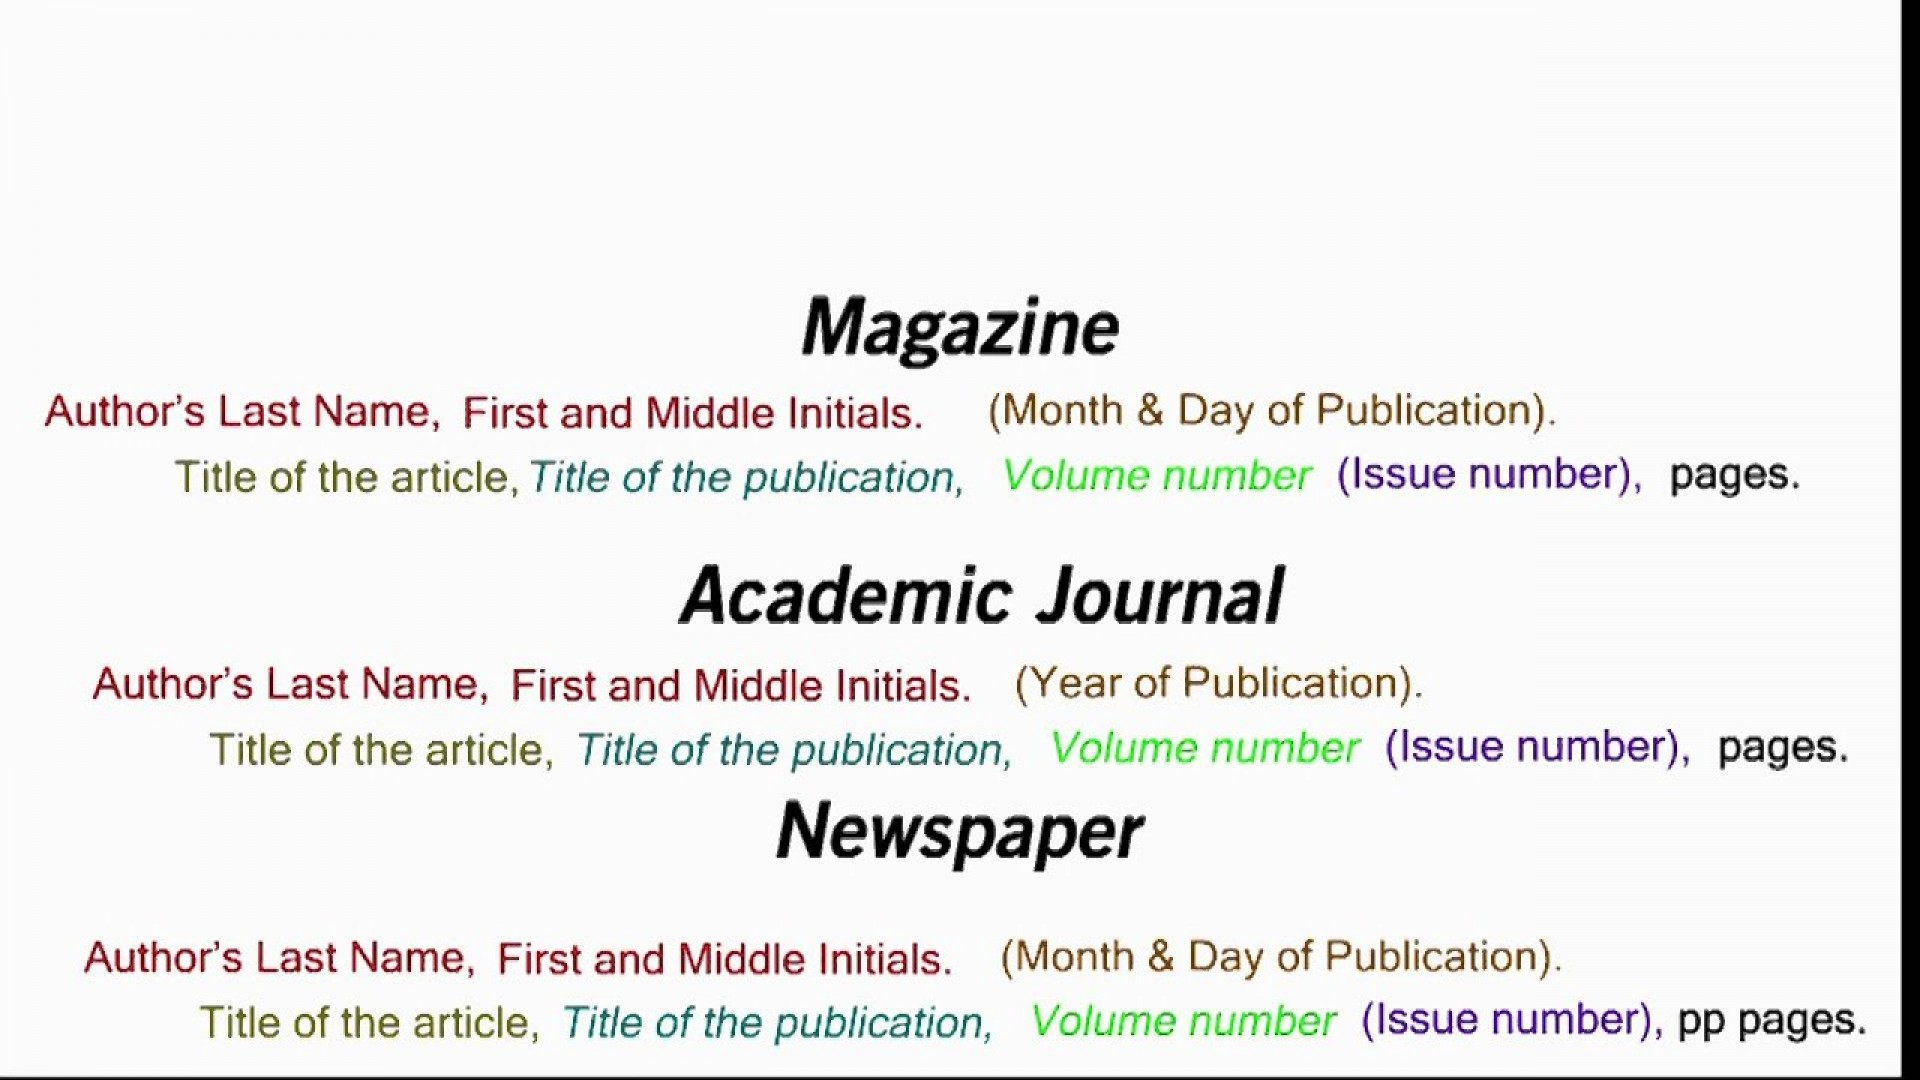 001 Research Paper How To Cite An Article In Apa Incredible A Journal 1920